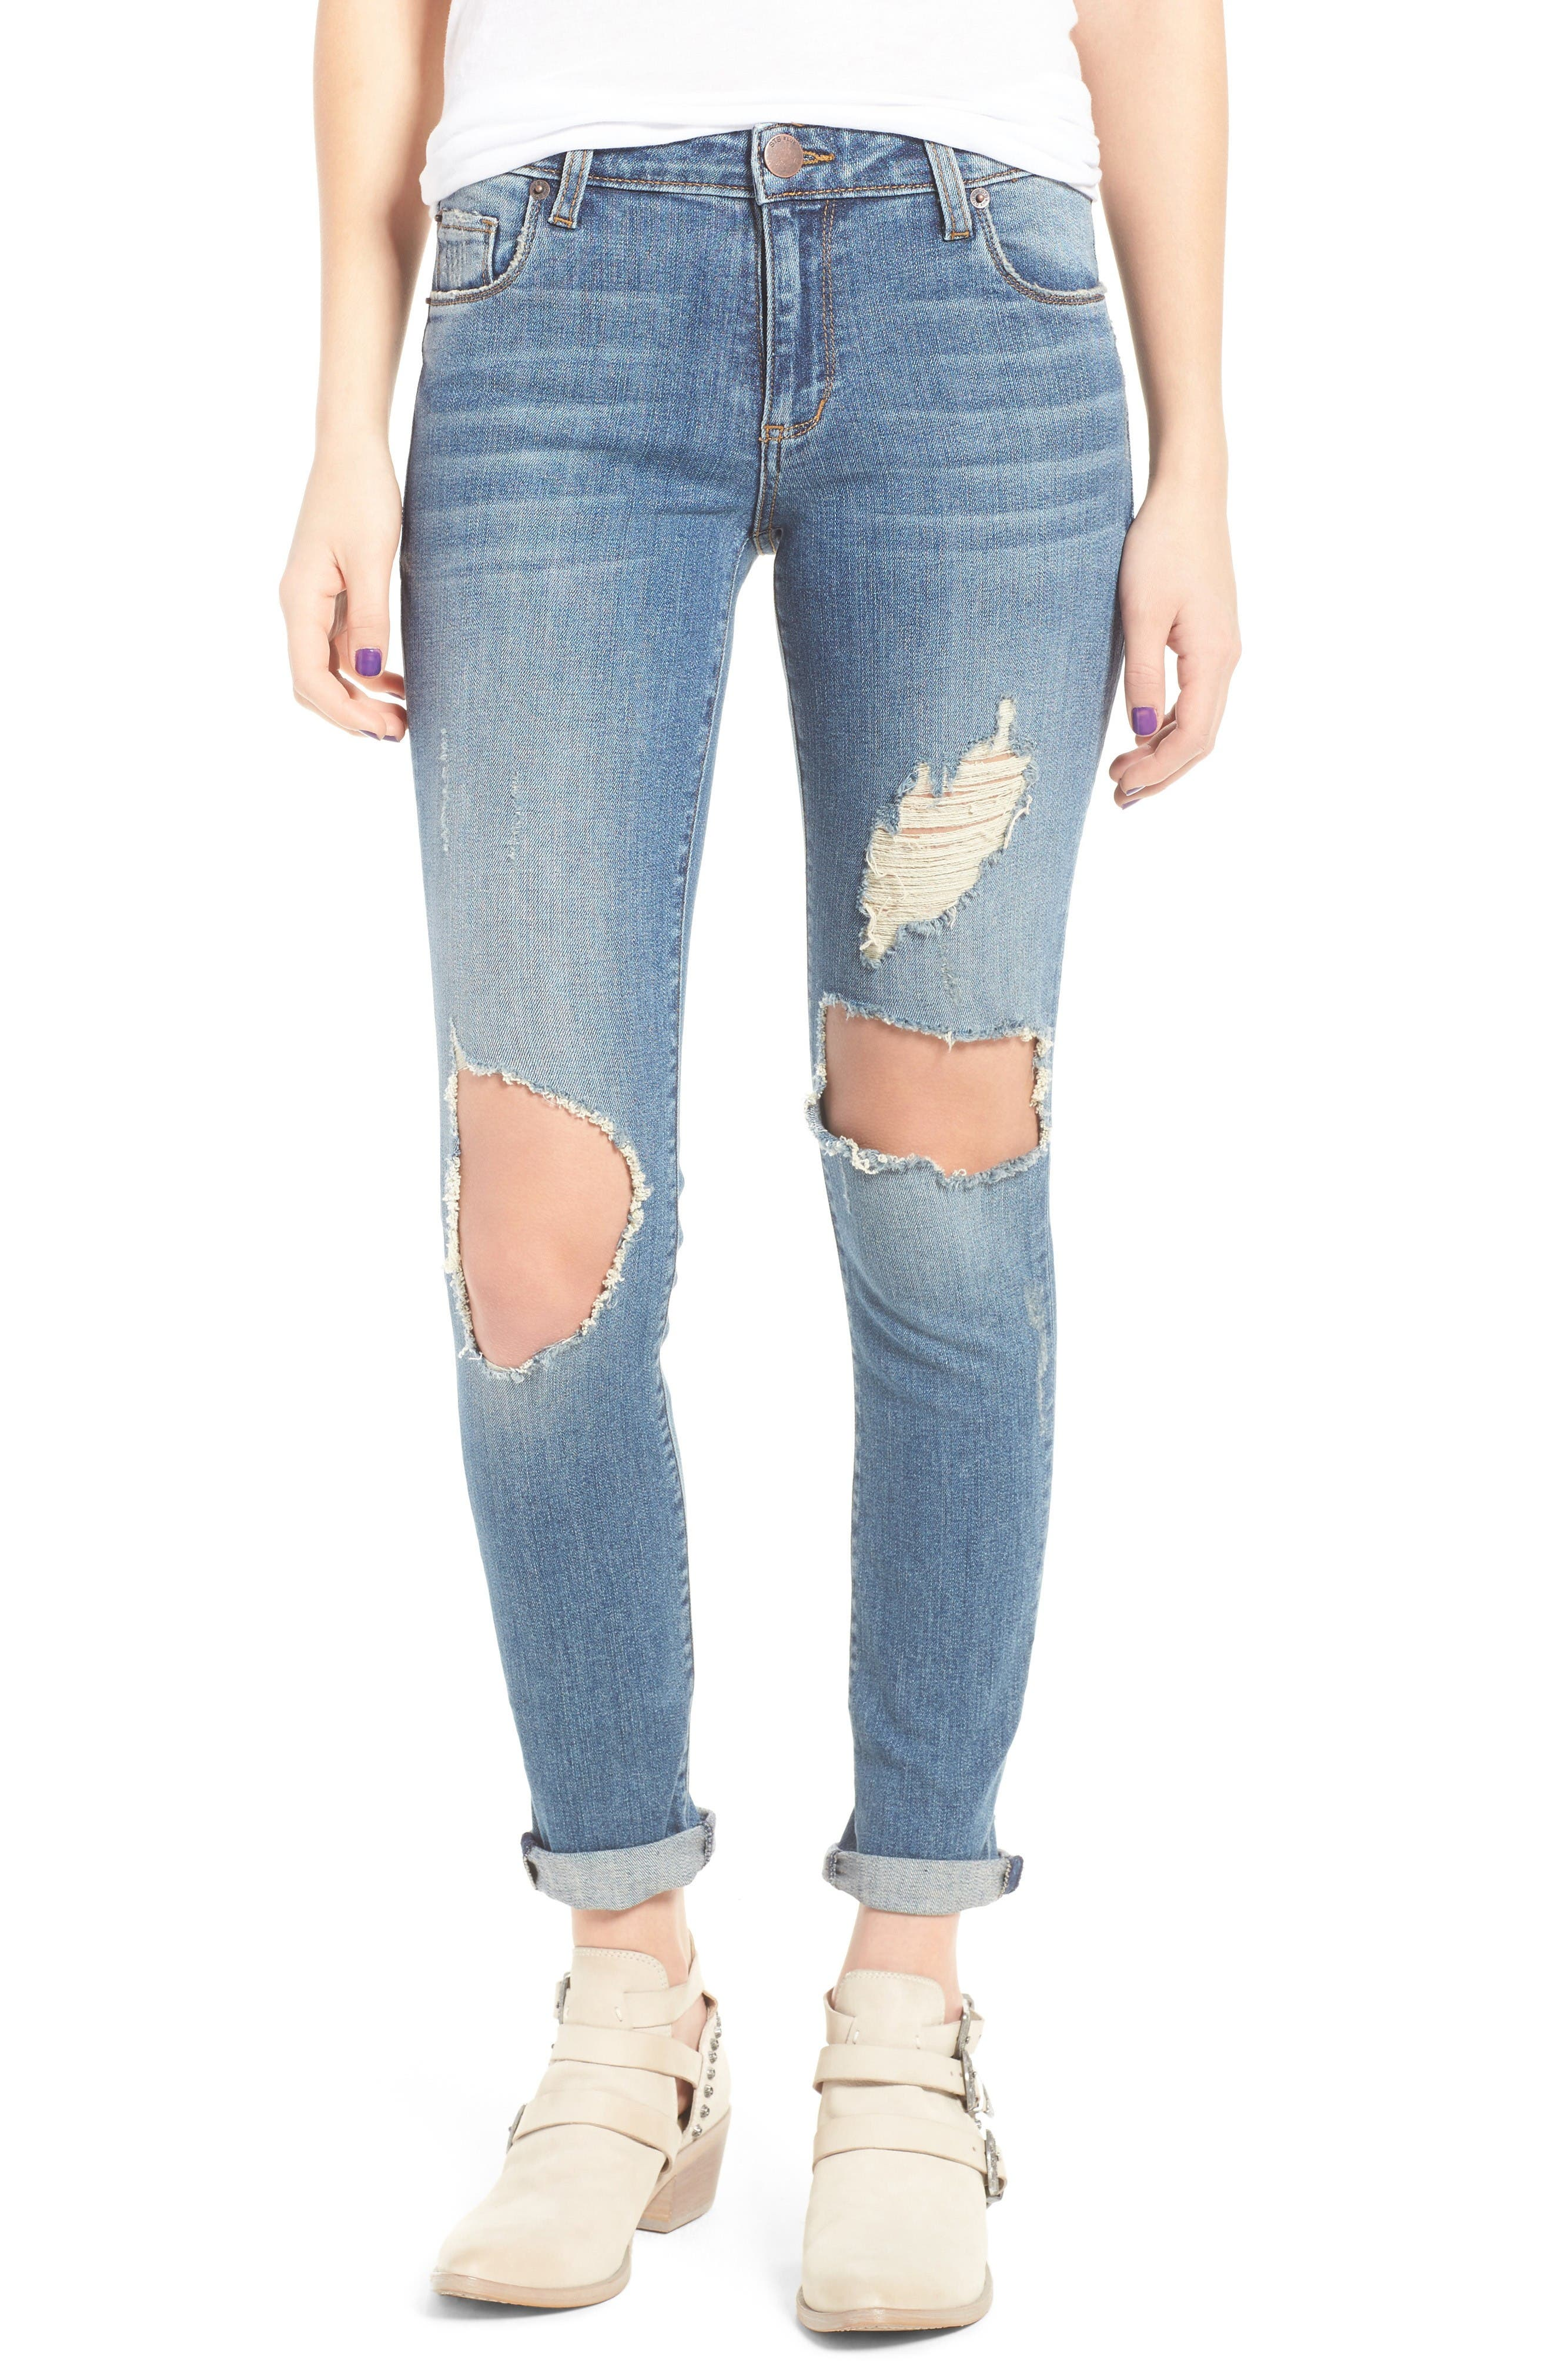 Alternate Image 1 Selected - STS Blue Taylor Ripped Boyfriend Jeans (Fern Canyon)